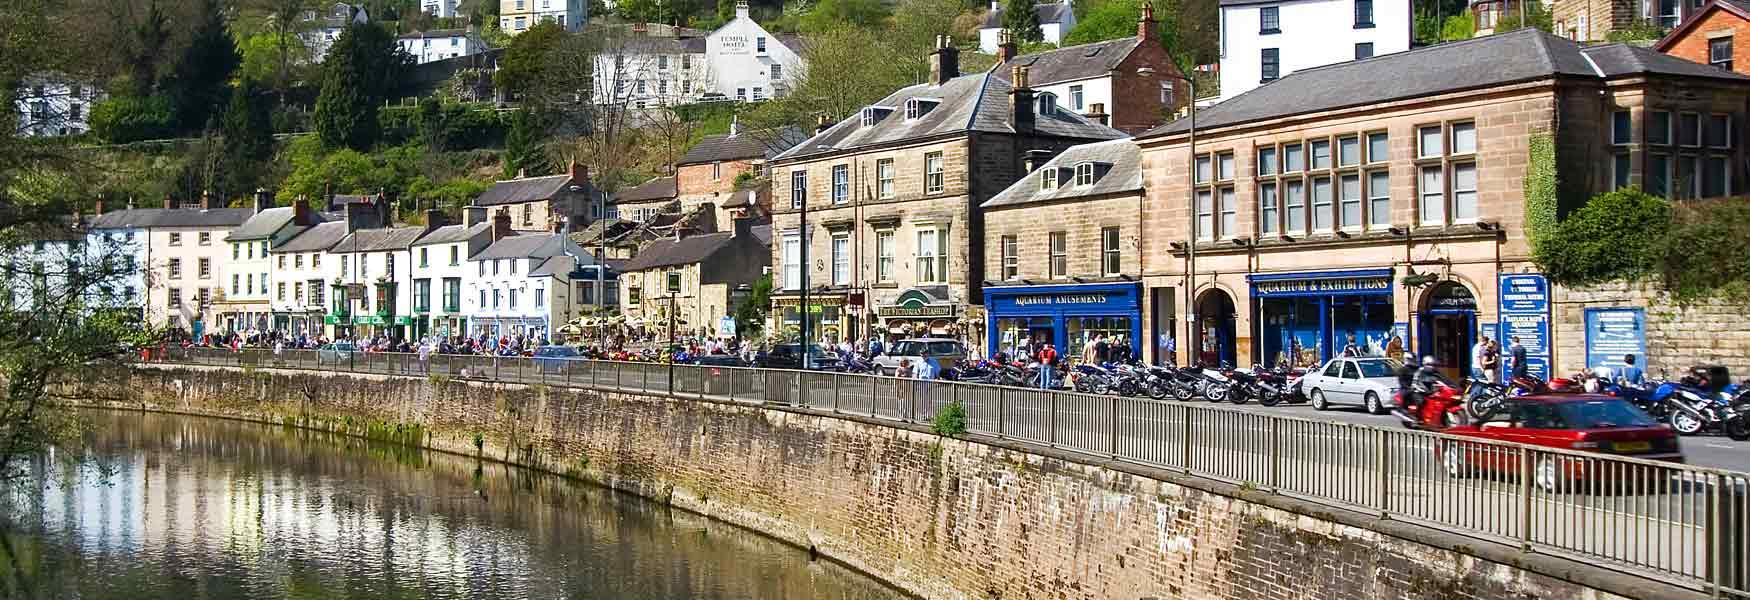 Check out the many attractions of Matlock Bath